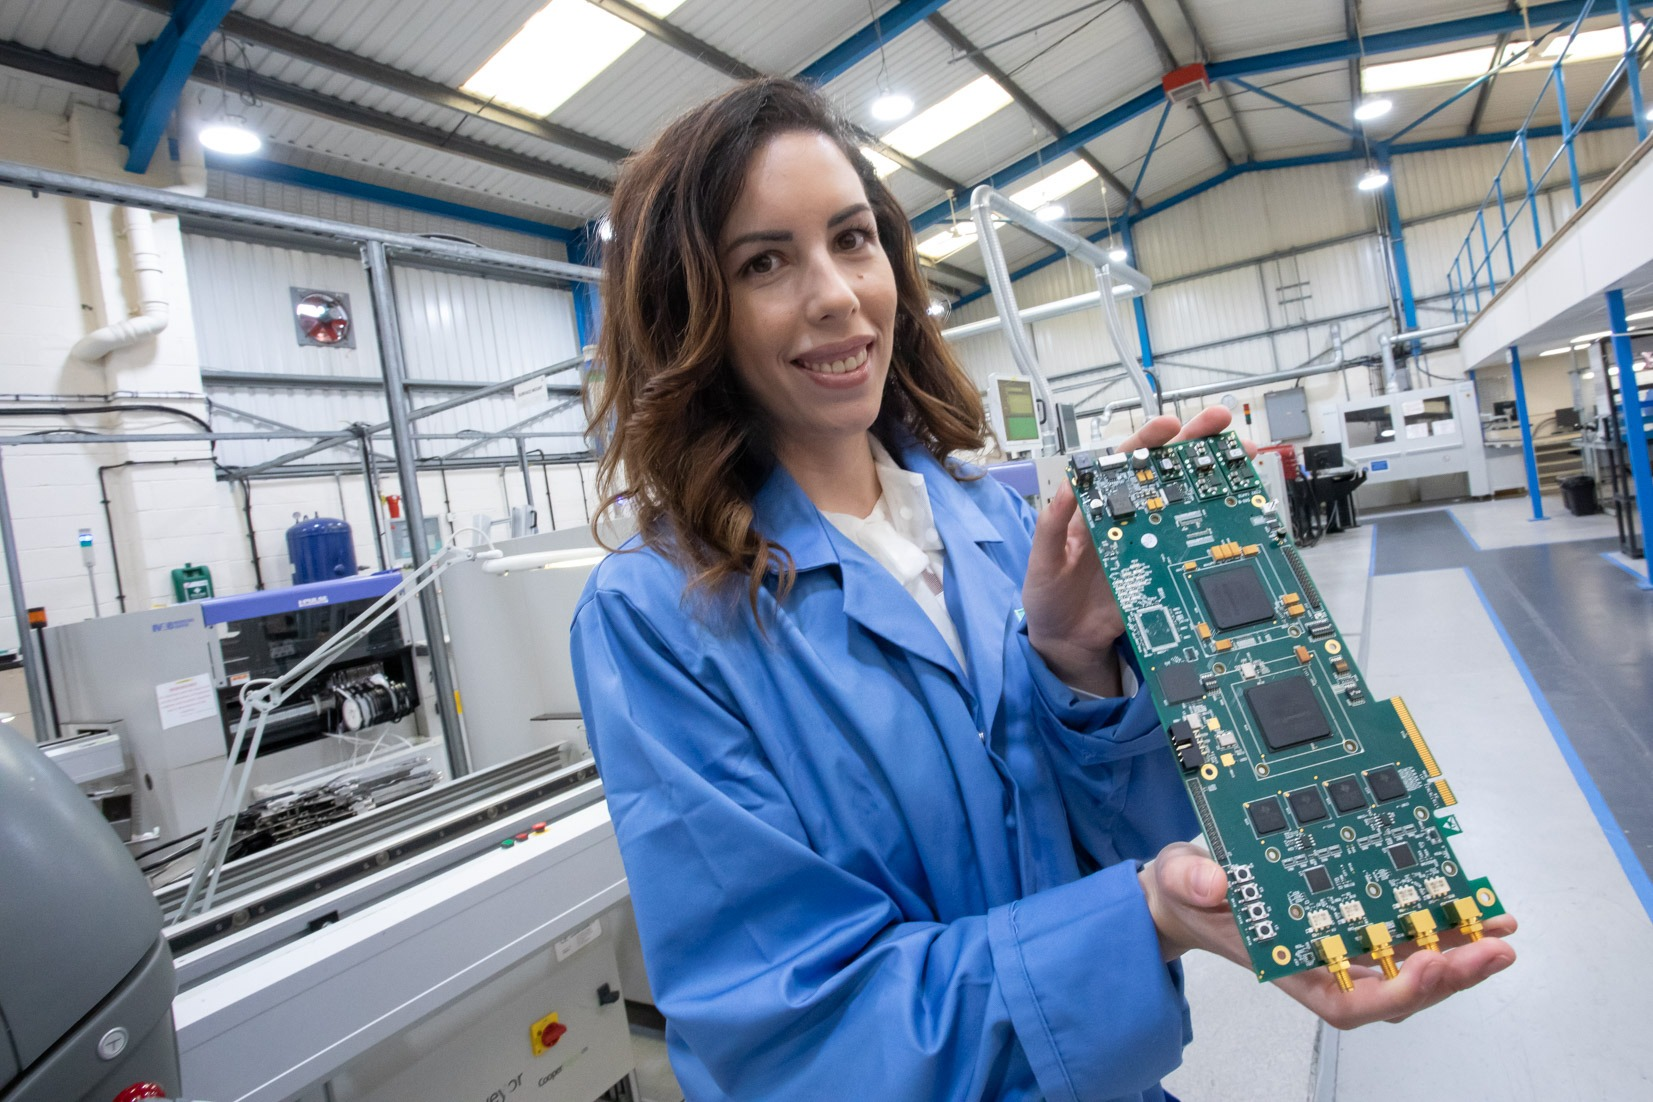 C-MAC SMT bounces back from Covid-19 to target £4m in sales